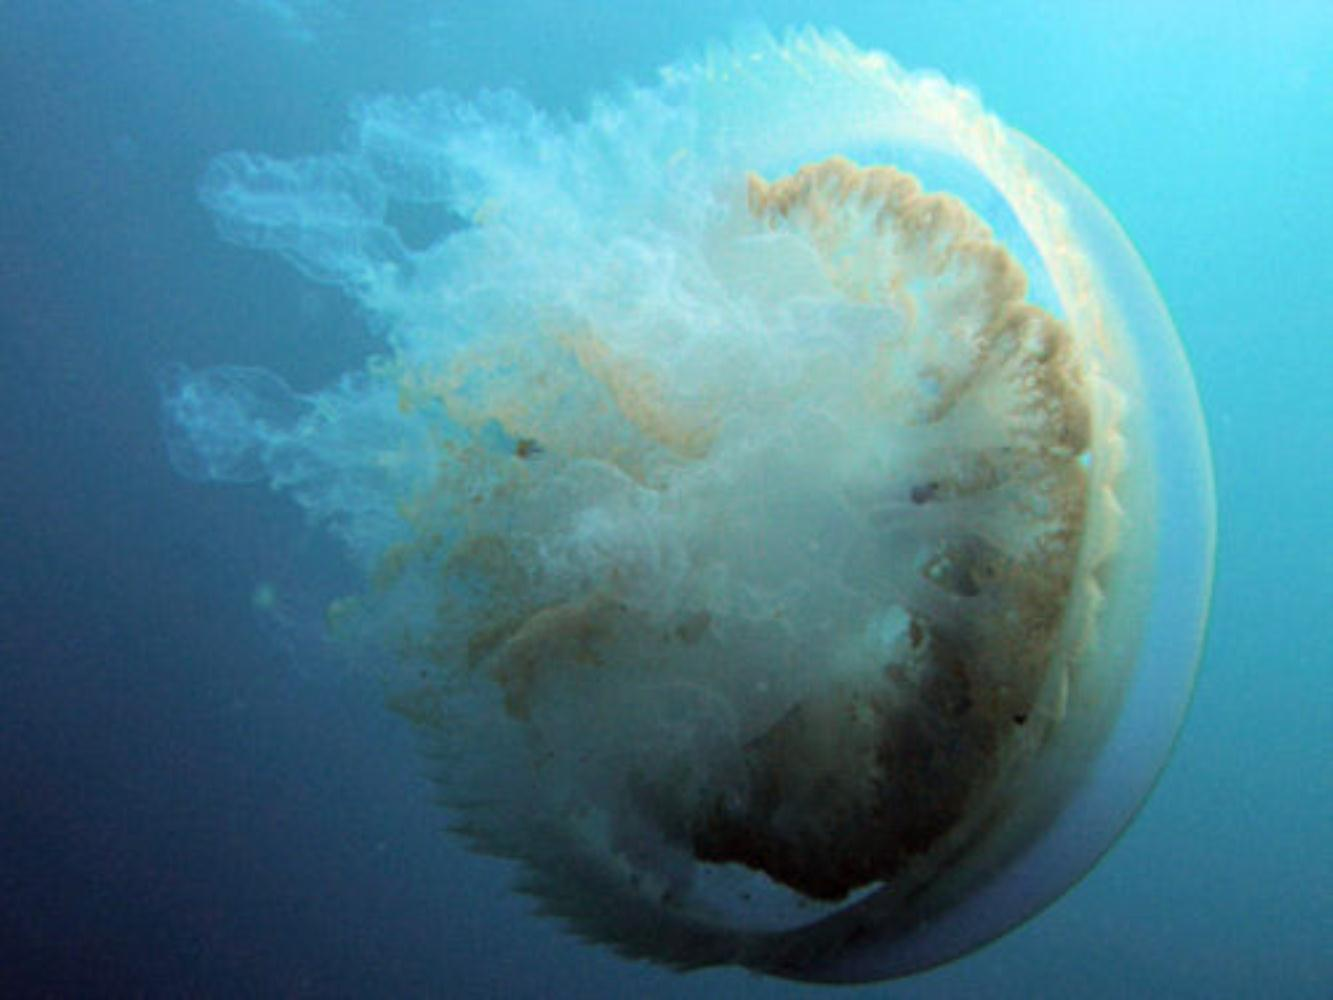 Root-mouthed jellyfish